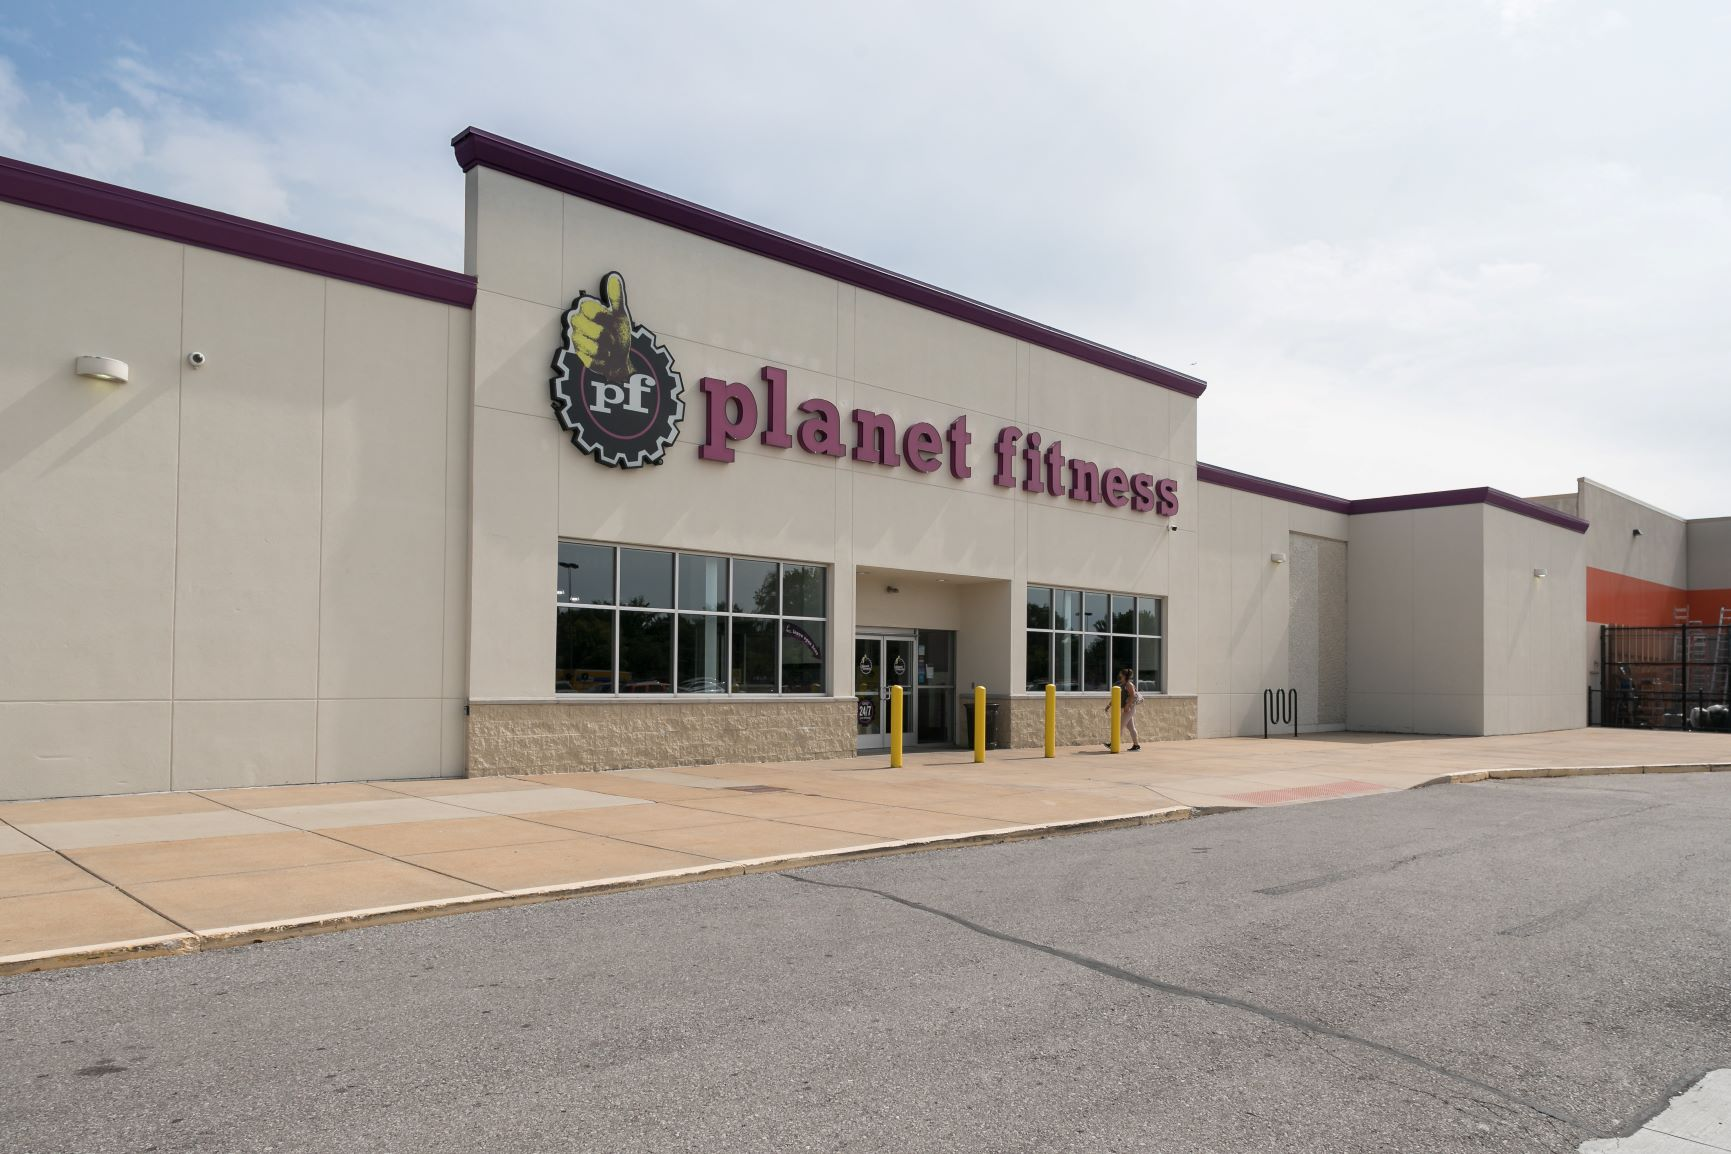 Overland Crossing - Planet Fitness